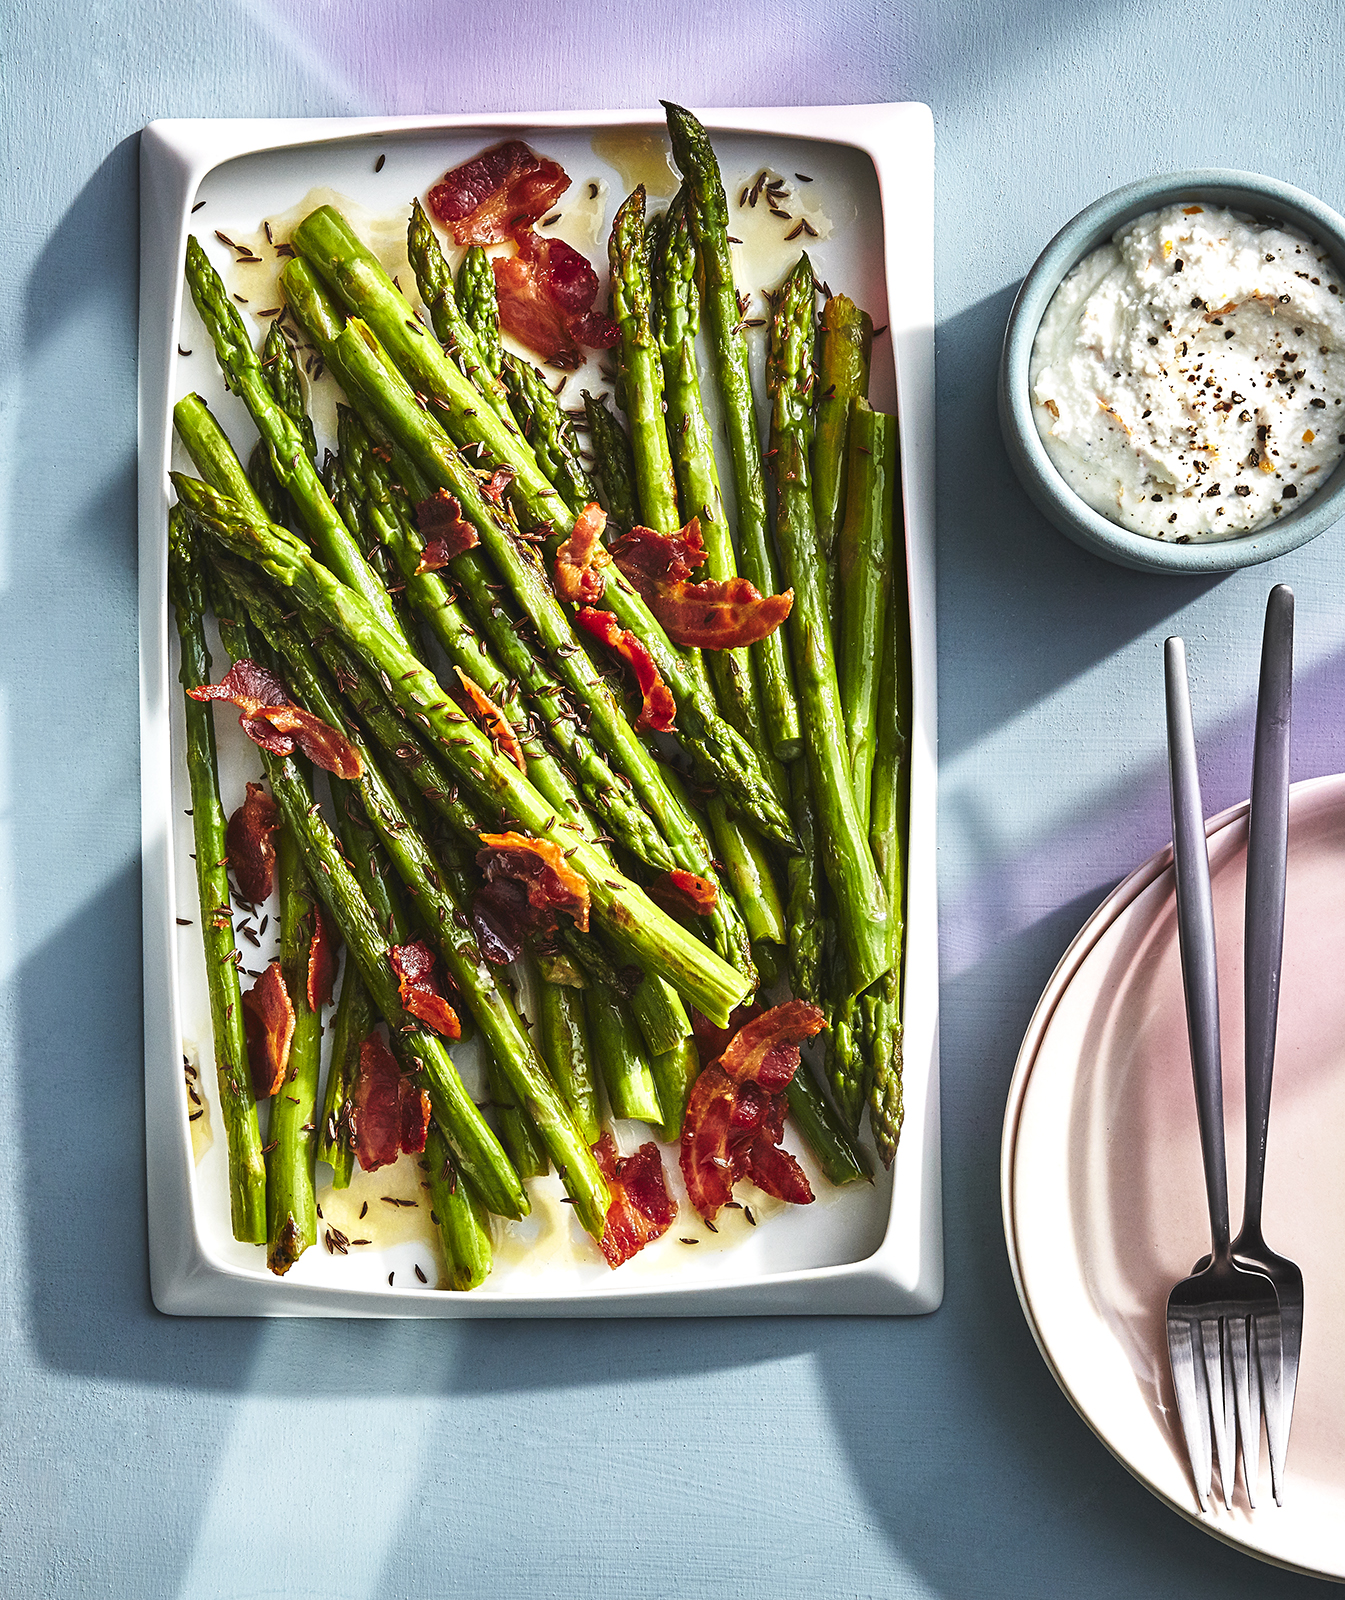 Lemon-caraway Asparagus With Ricotta and Pancetta